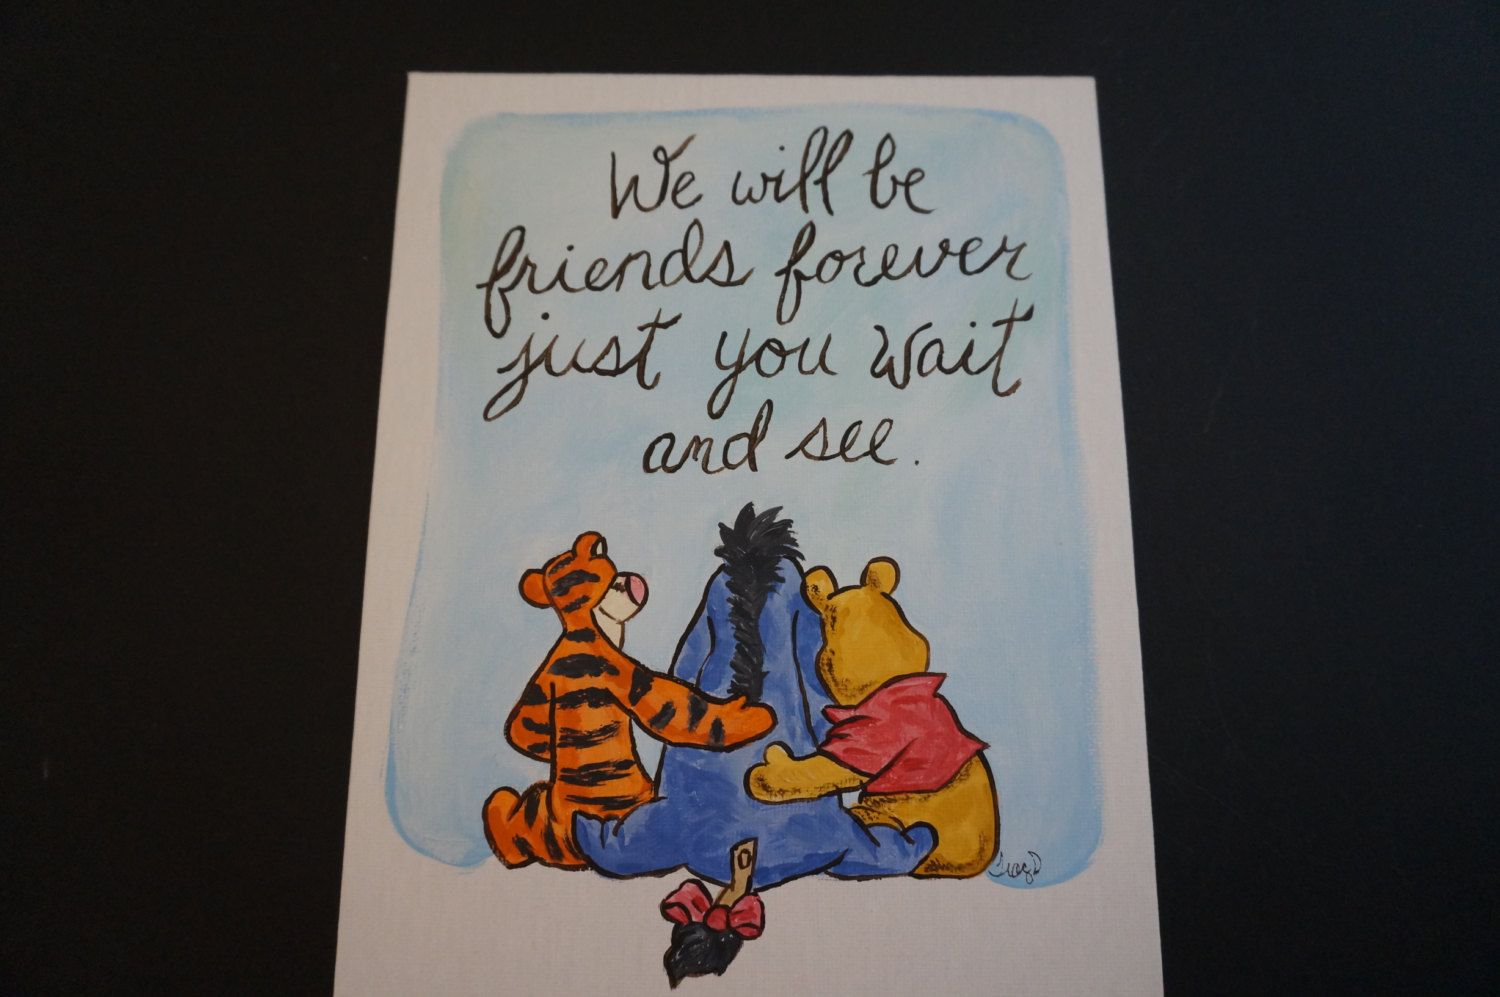 Classic Winnie The Pooh Tigger And Eeyore Hand Painted Flat Canvas 8x10 Friends Forever Friend Gift Saying Goodbye Leaving Home Graduation Friend Canvas Best Friend Canvas Eeyore Paintings